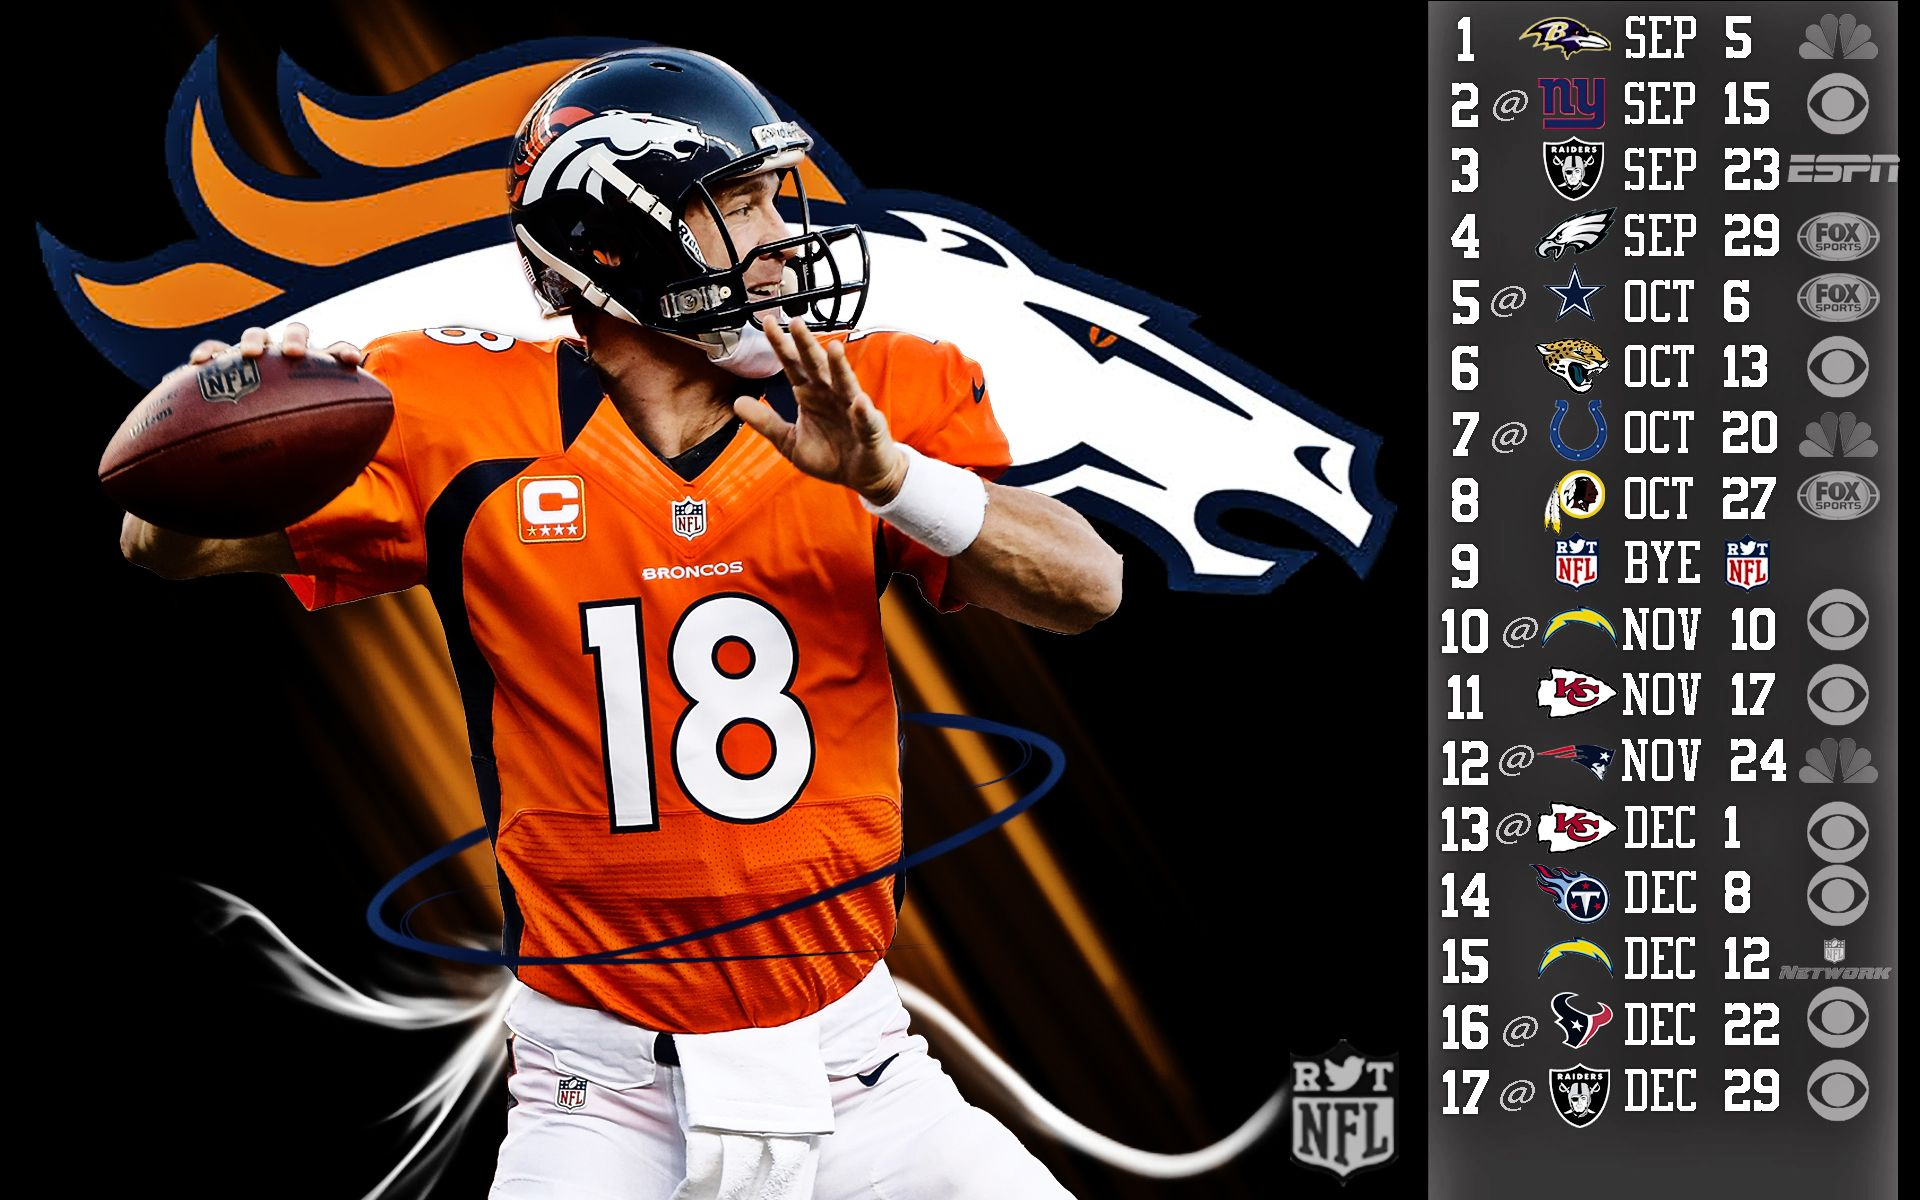 Denver broncos schedule wallpaper 2013 denver broncos wallpapers denver broncos schedule wallpaper 2013 denver broncos wallpapers voltagebd Image collections